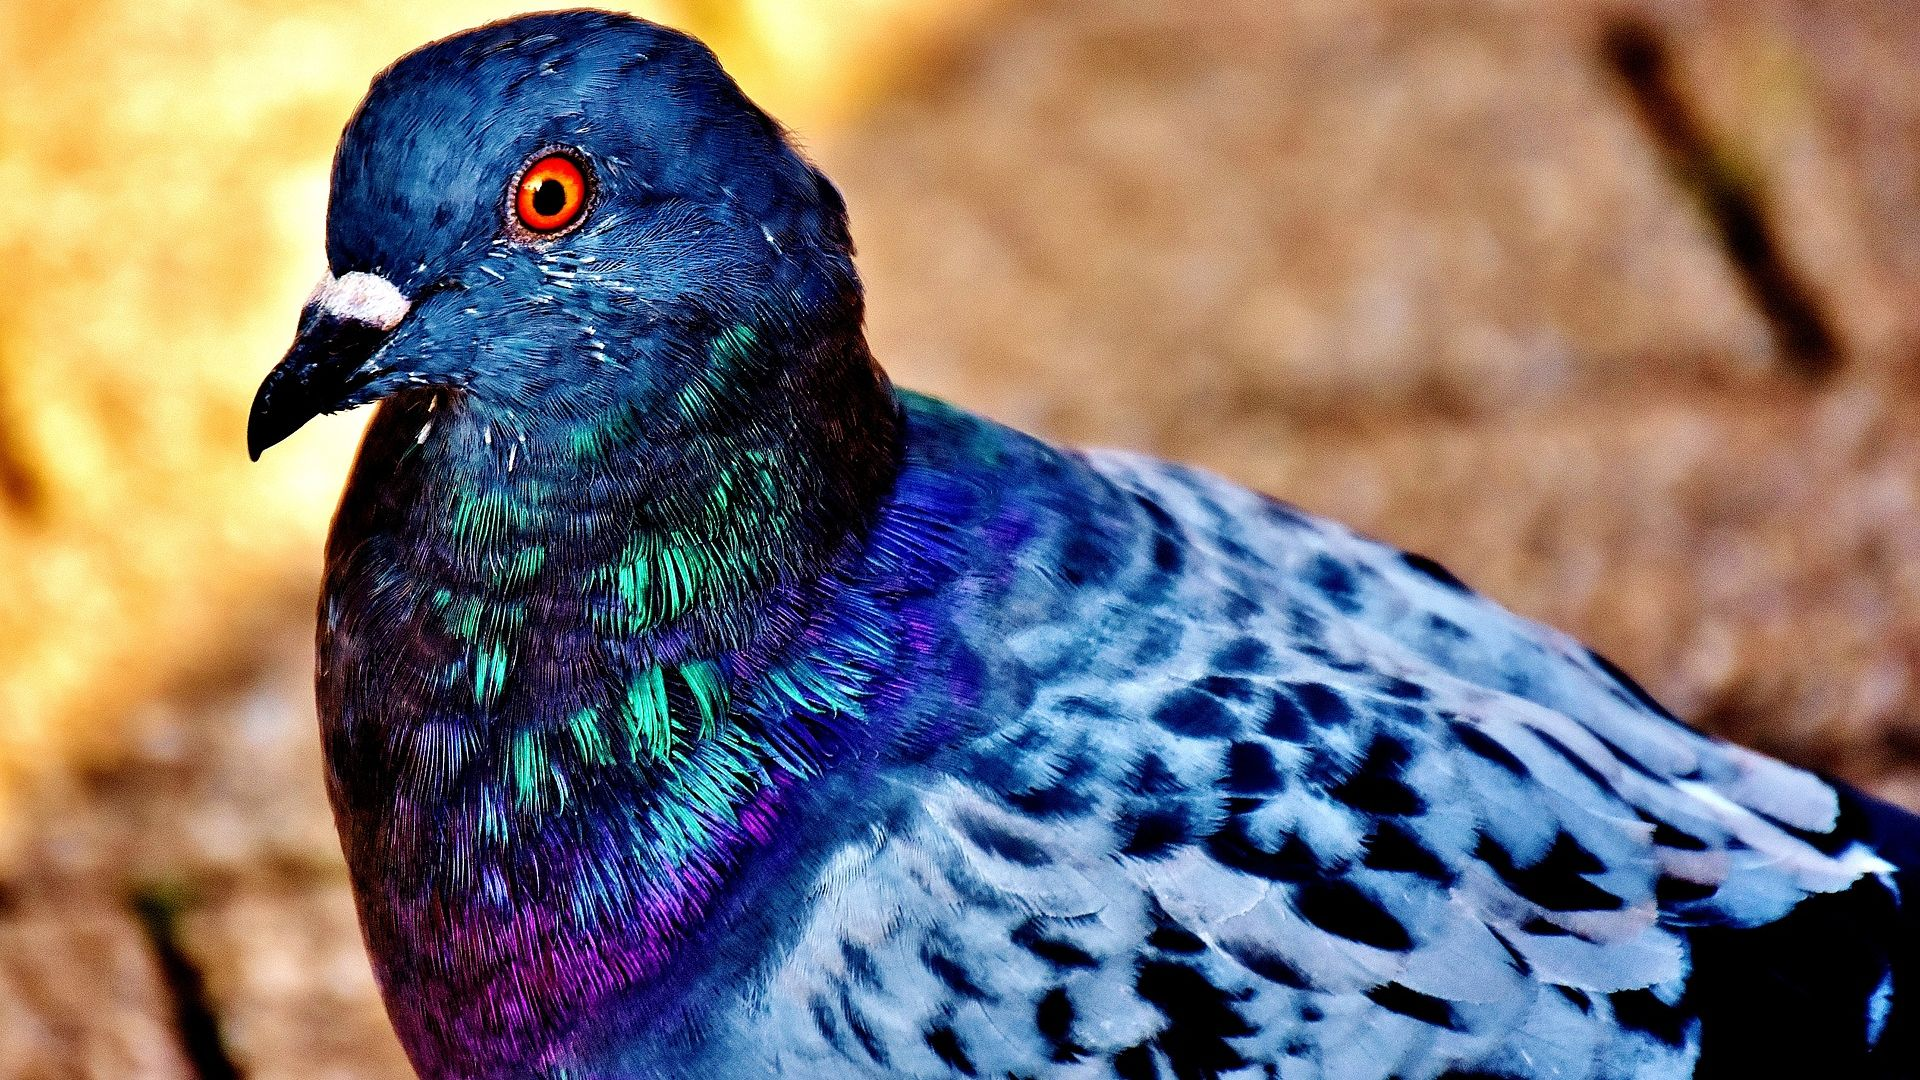 Wallpaper Dove bird, close up, colorful